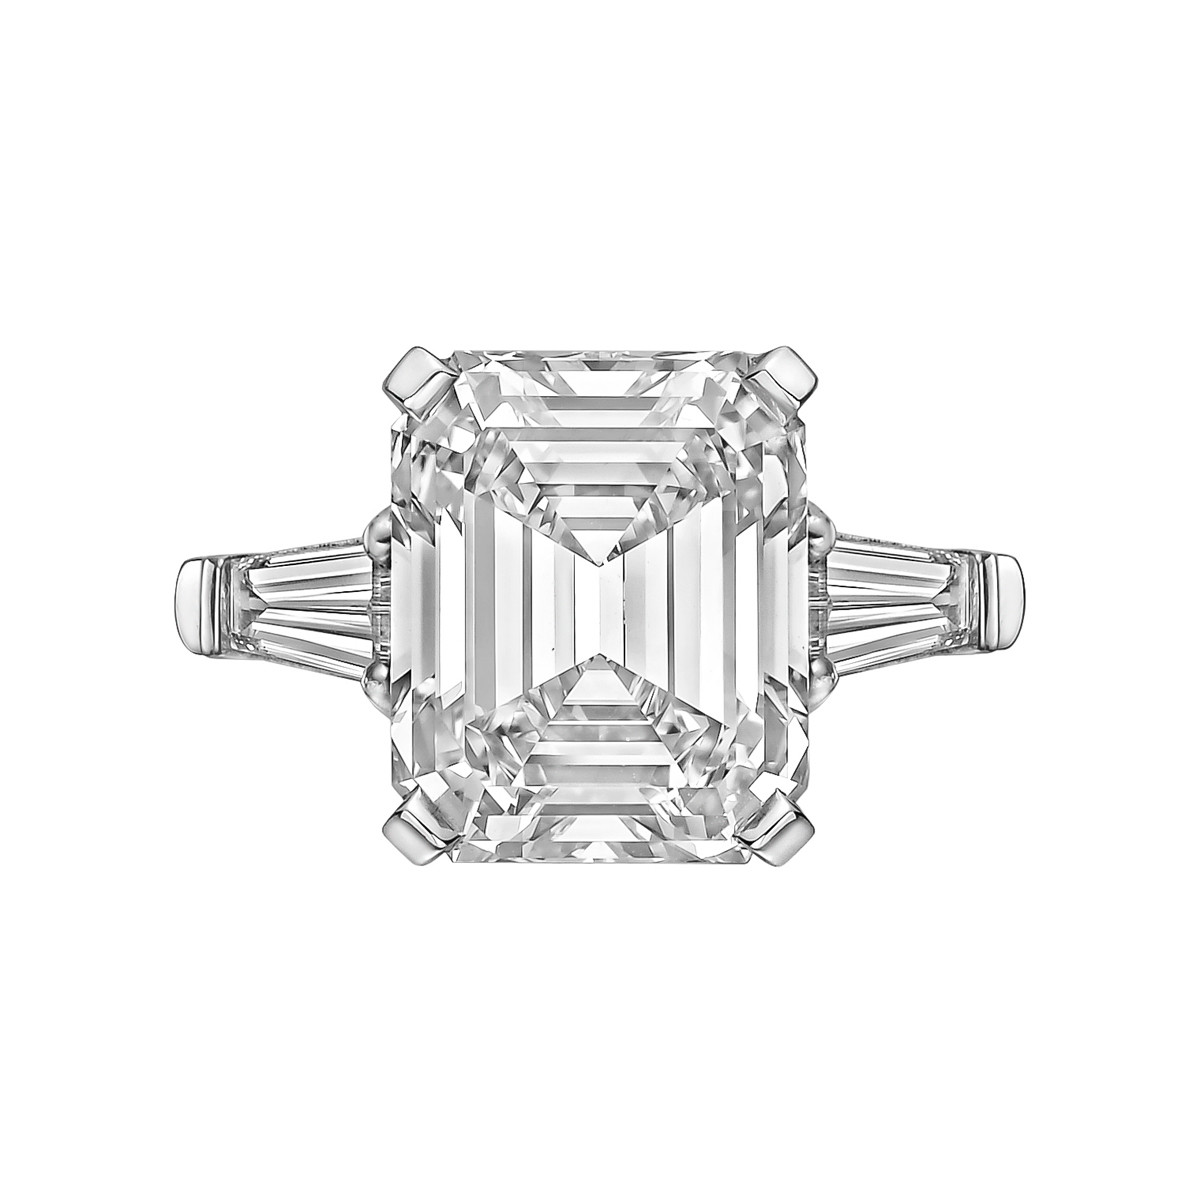 8.06ct Emerald-Cut Diamond Ring (H/VS2)